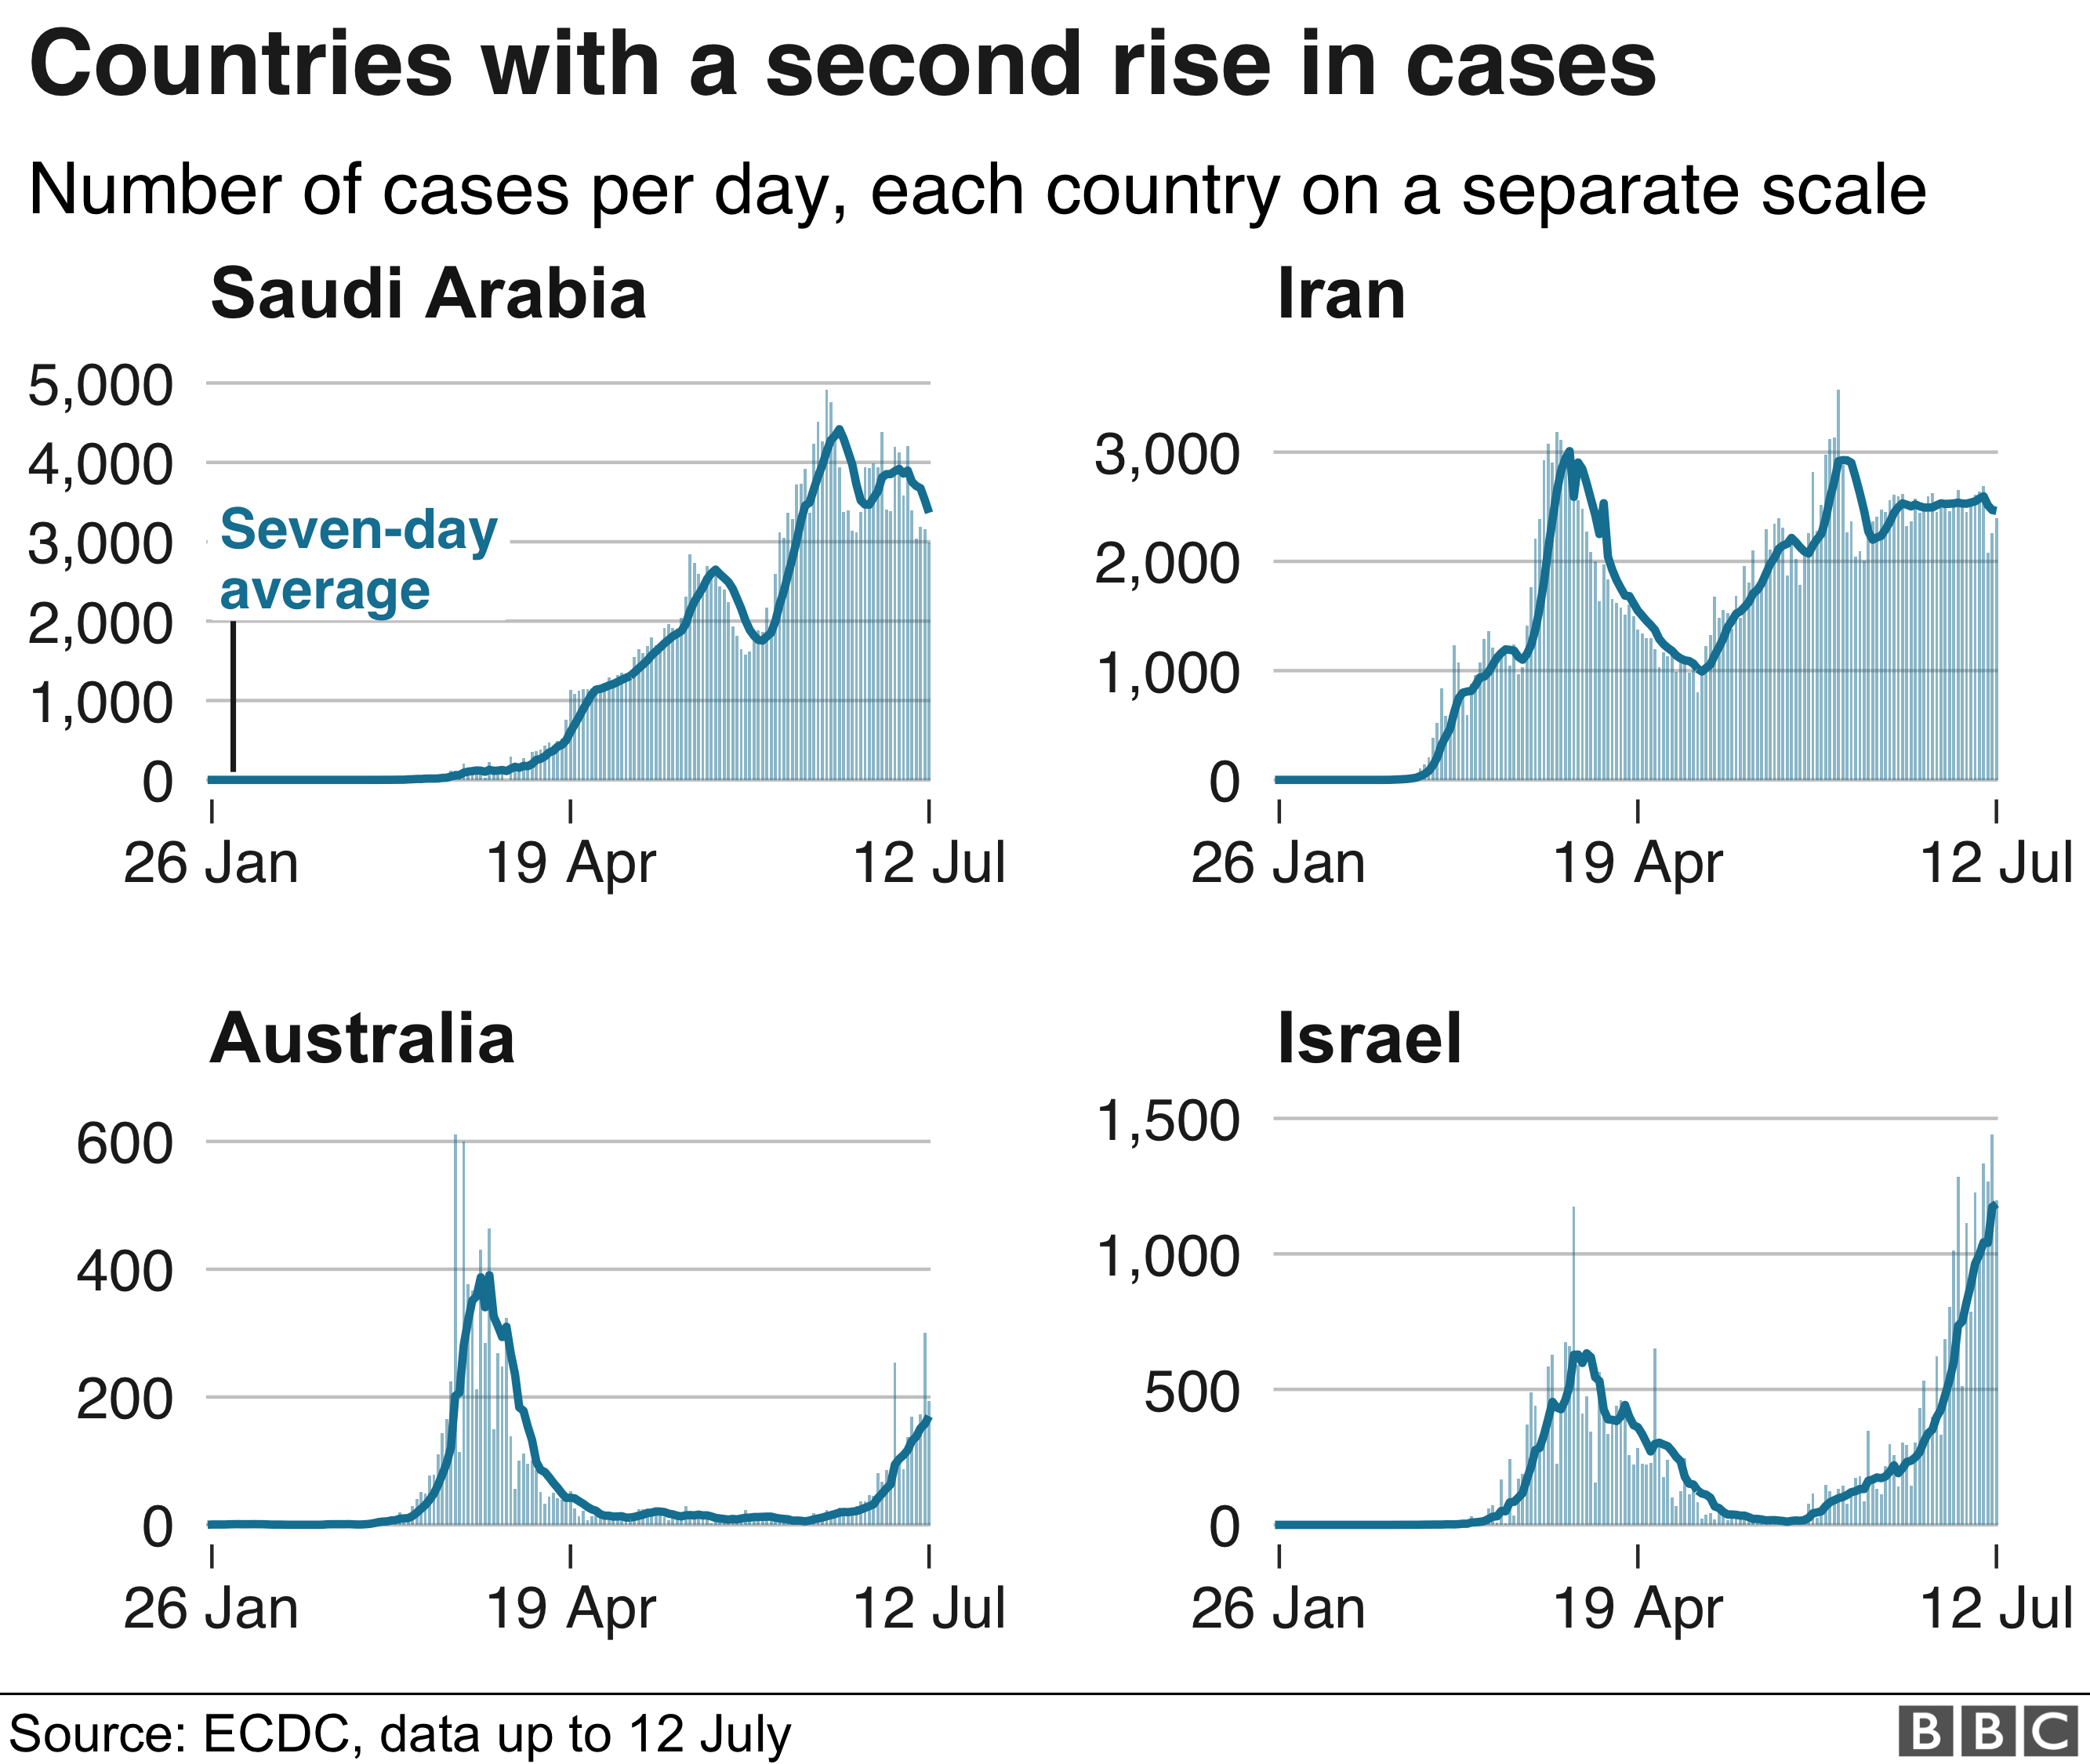 Chart showing a second rises in cases in Saudi Arabia, Iran, Australia and Israel. 13 July.